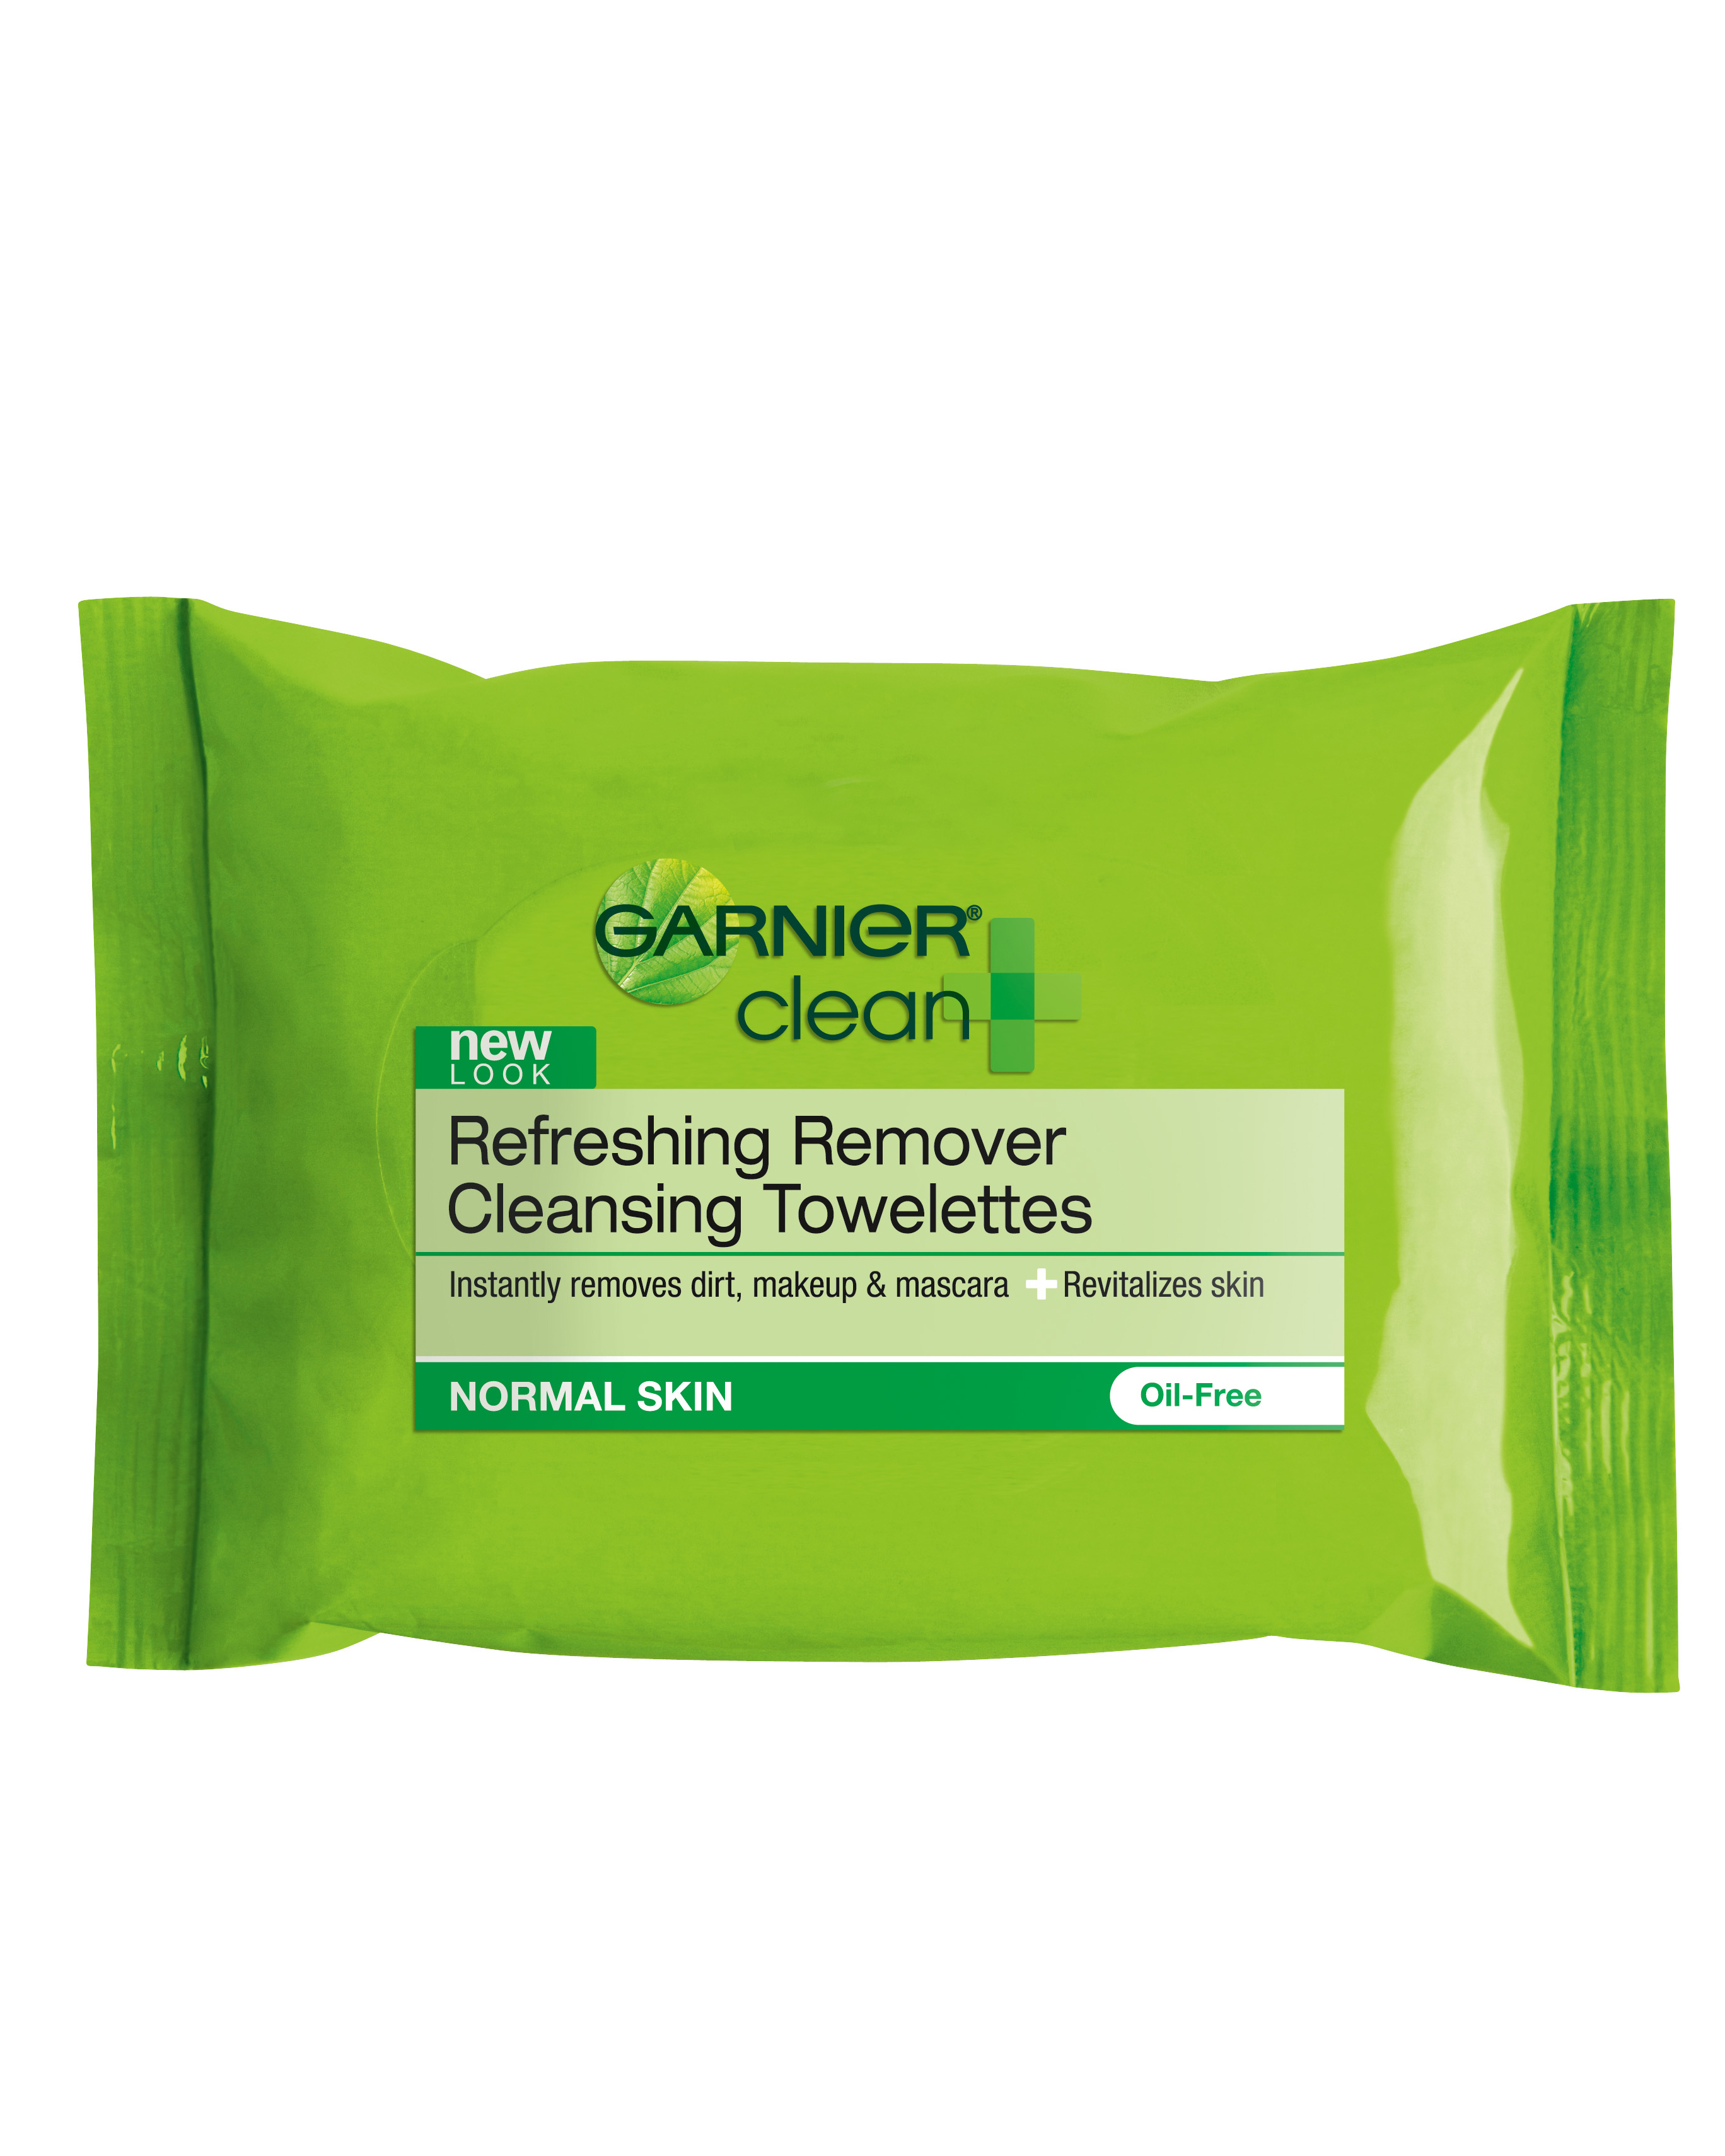 garnier-clean-refreshing-remover-cleansing-towelettes-0414.jpg